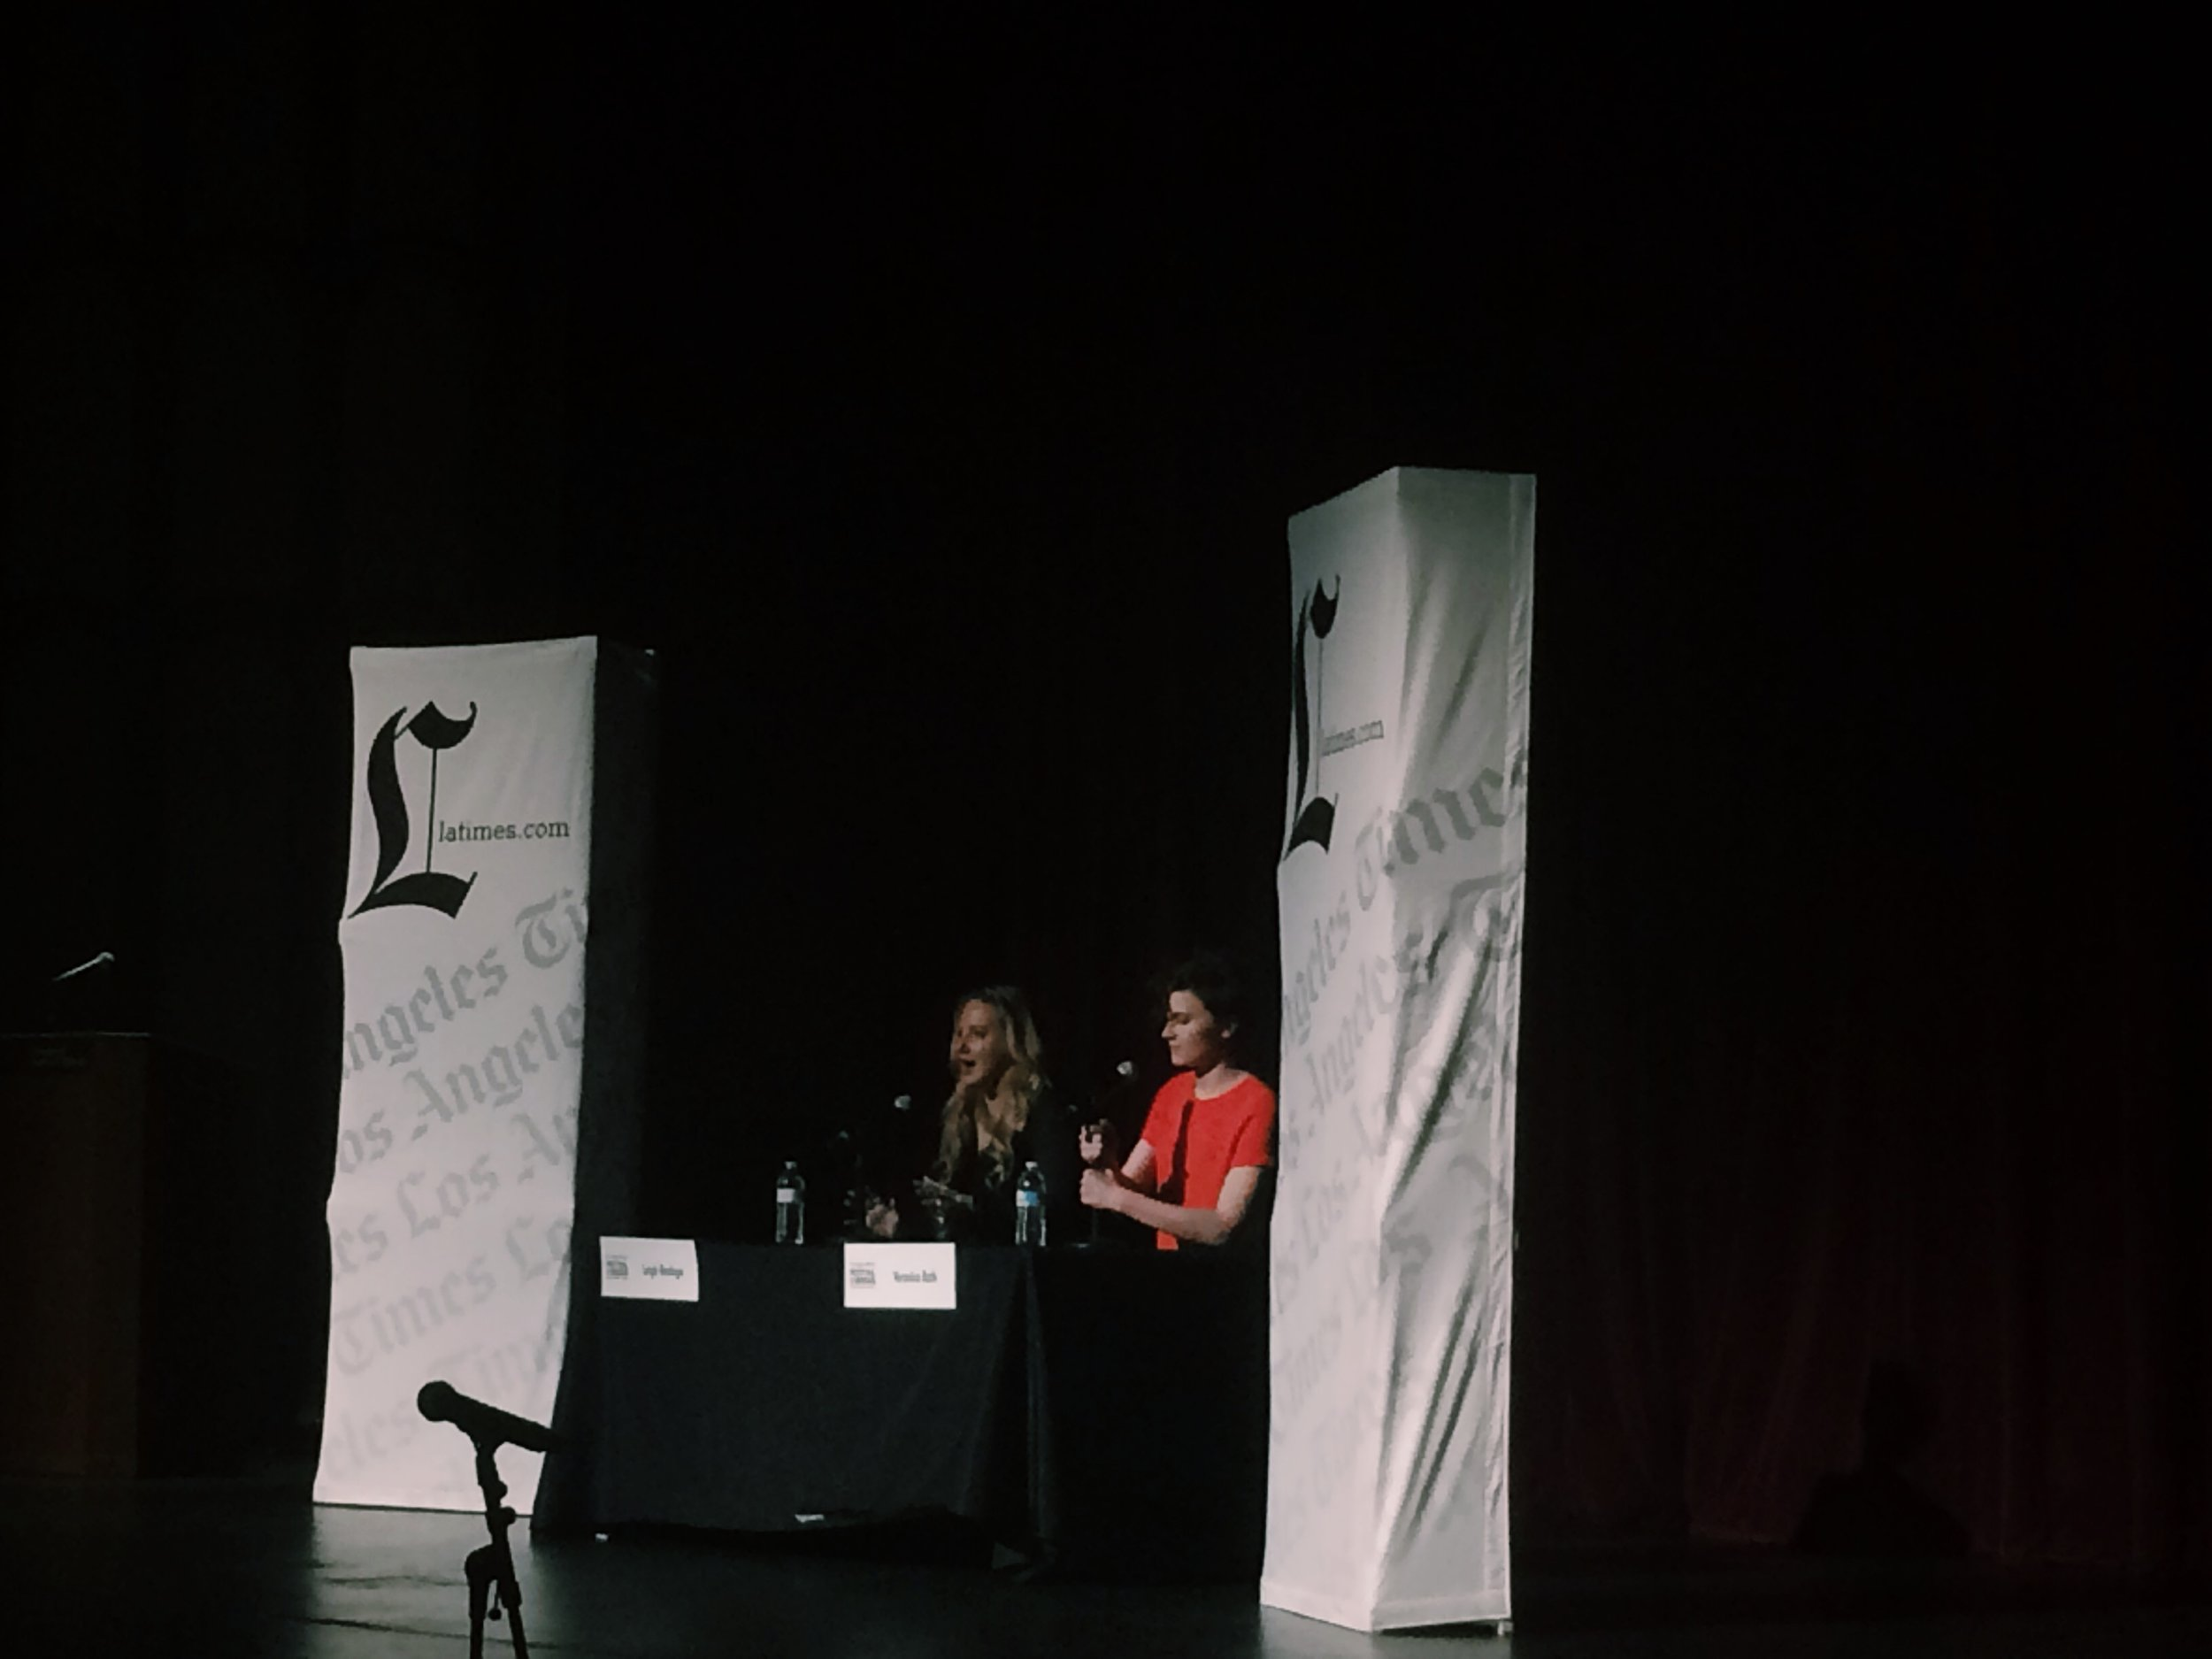 Left to right: Leigh Bardugo (SHADOW AND BONE) and Veronica Roth (DIVERGENT)